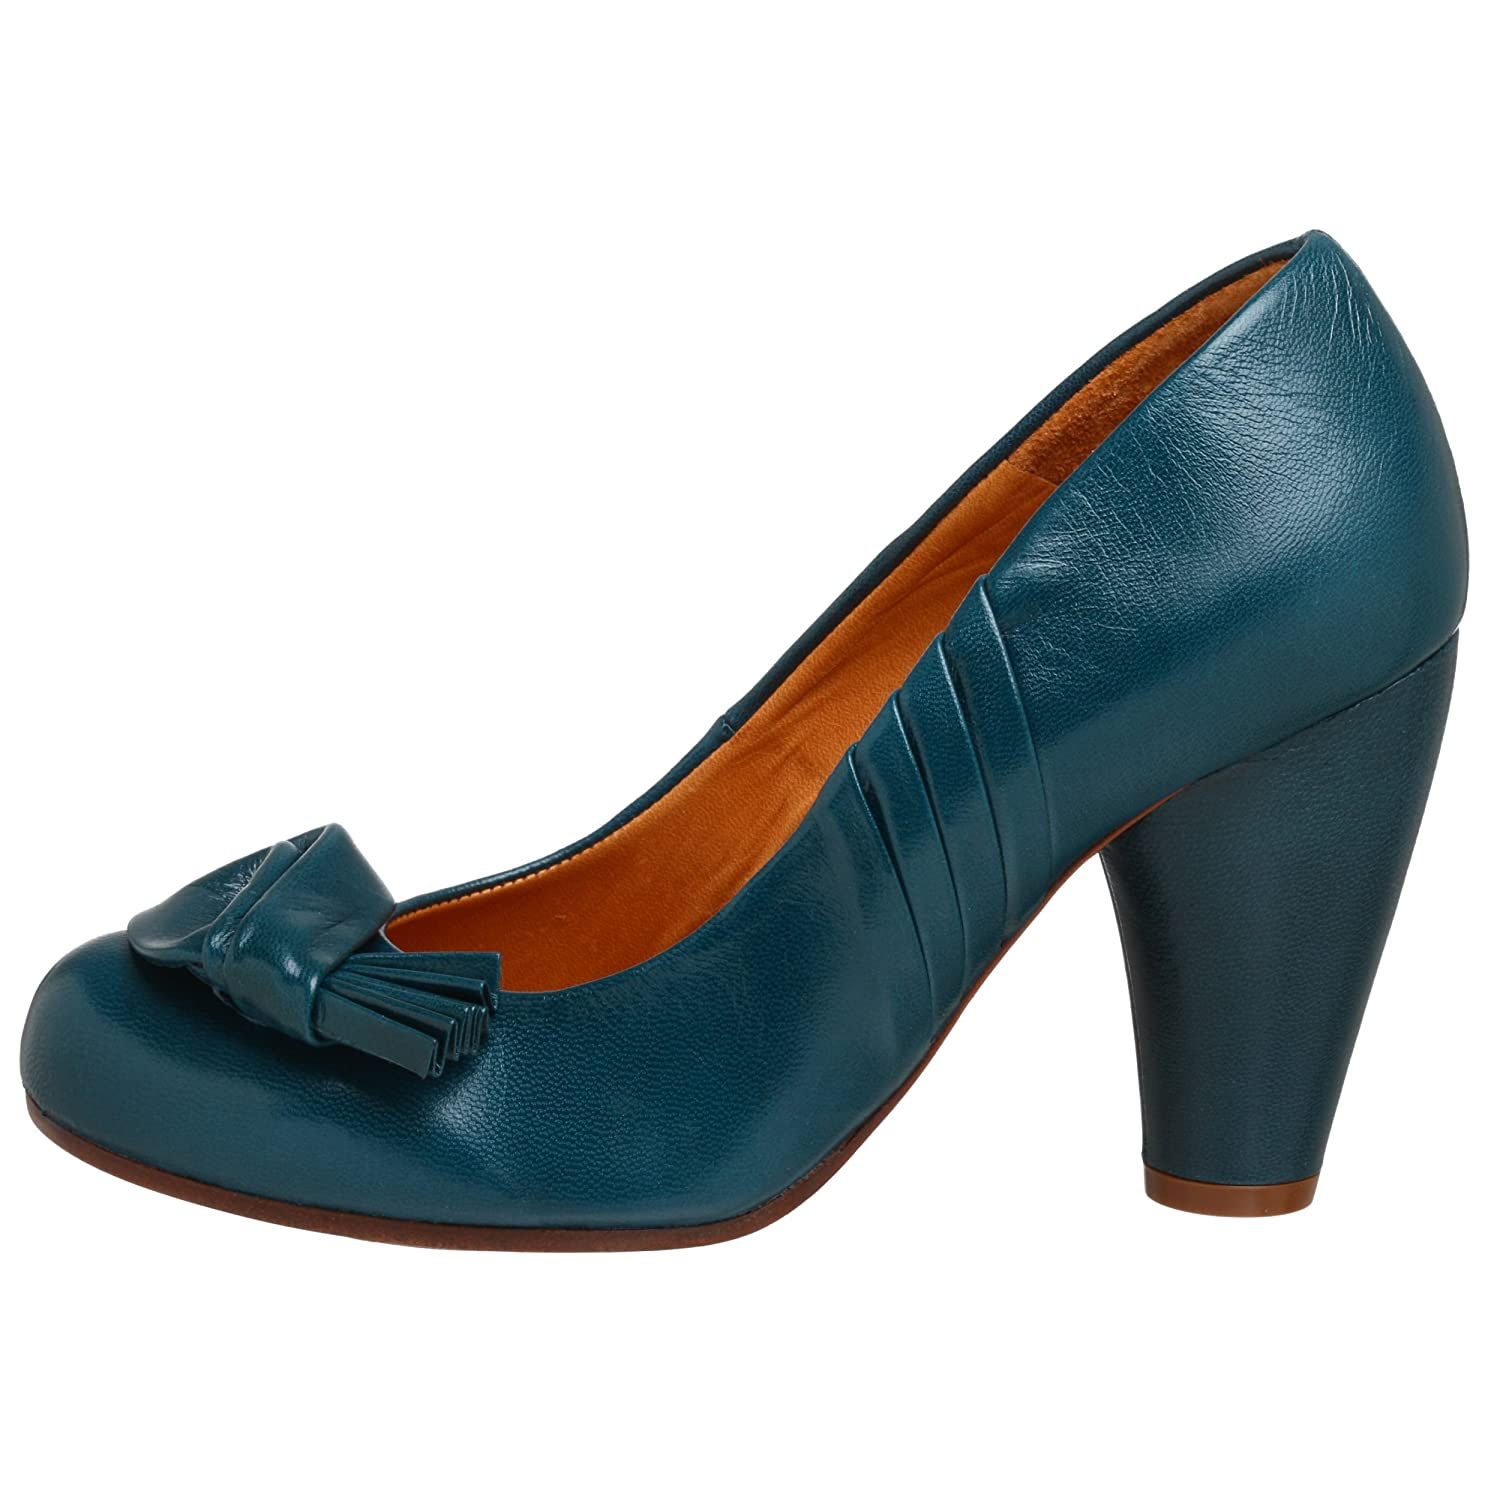 Chie Mihara Women's Serena Pump - Free Overnight Shipping & Return Shipping: Endless.com :  pumps shoes cone heel chie mihara